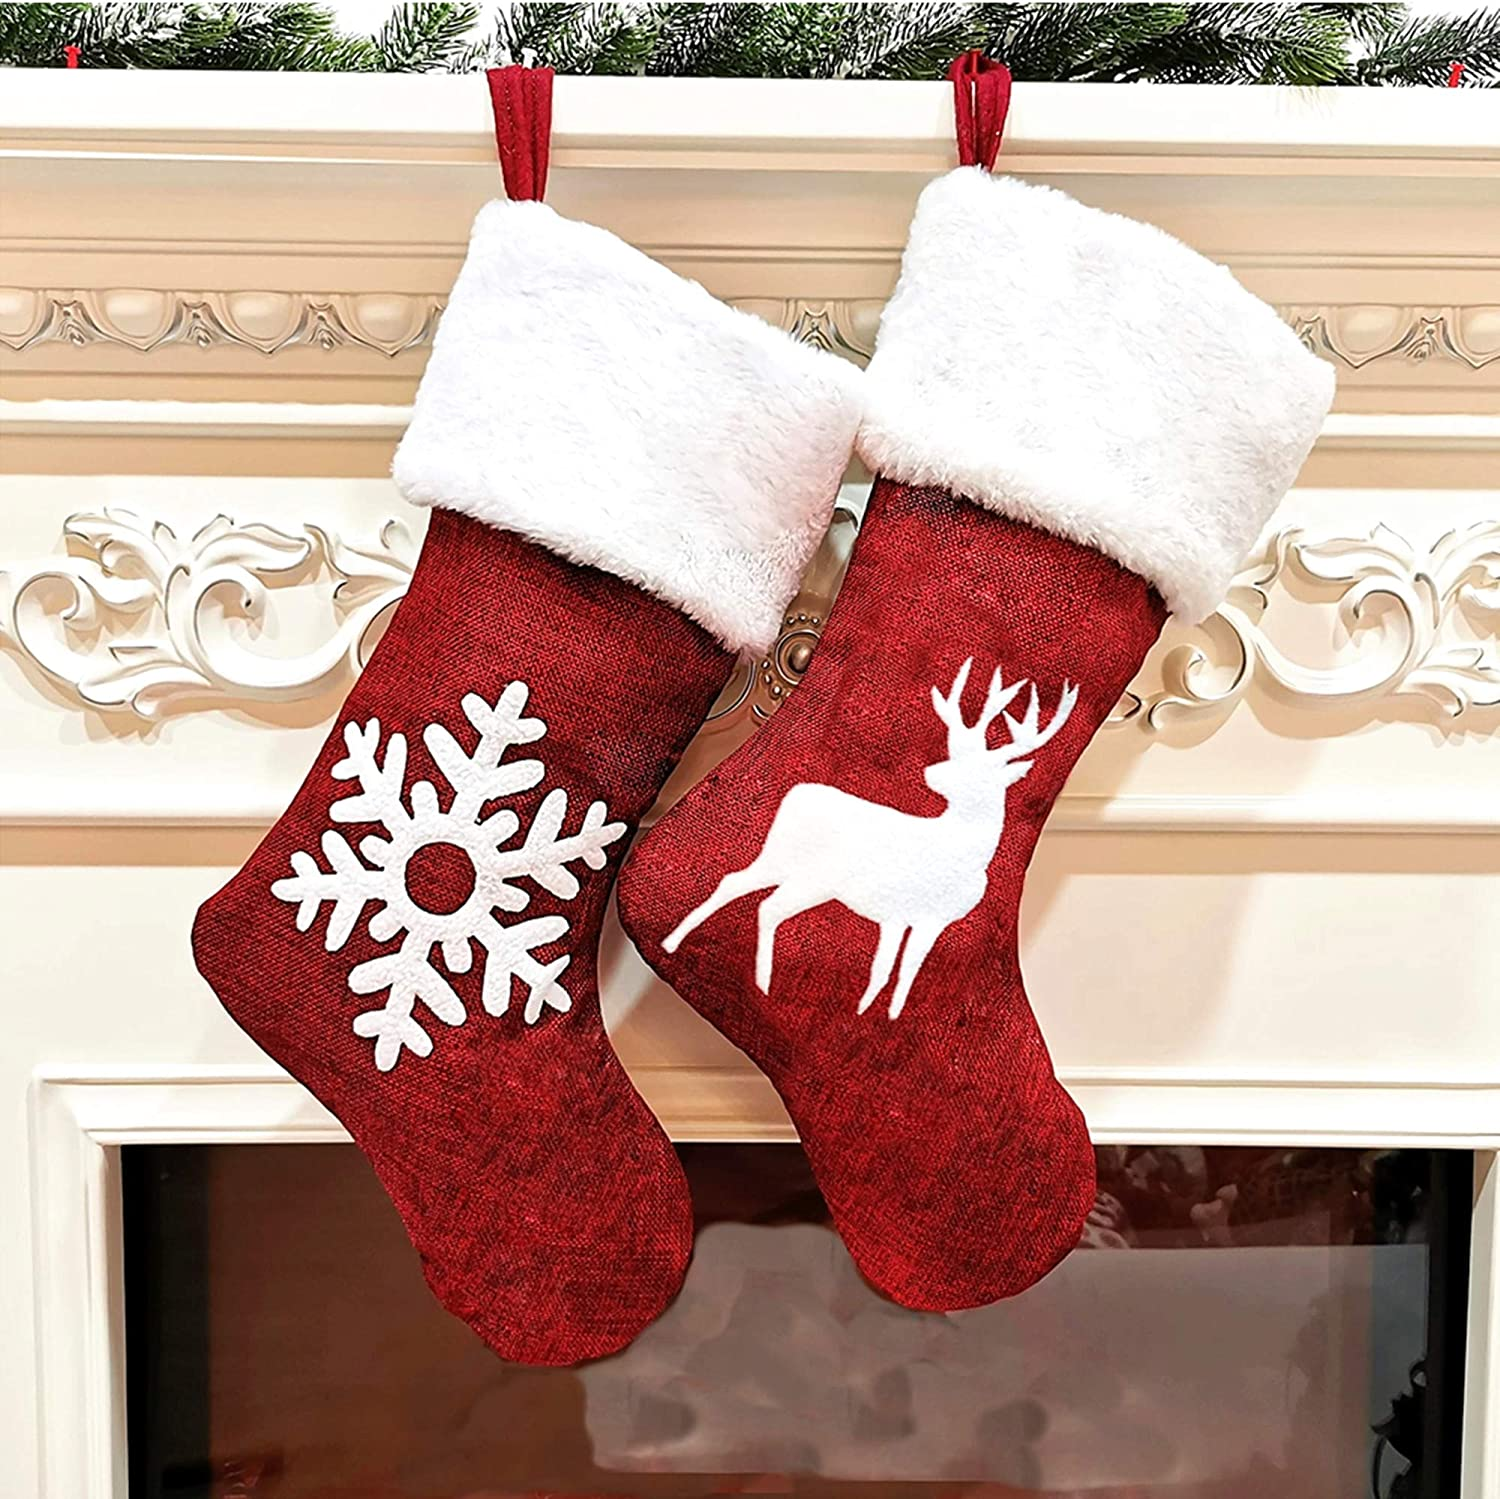 jxcmhg Max 62% OFF Spring new work one after another Christmas Stockings 2 Pack 18 for Candy Xm inch